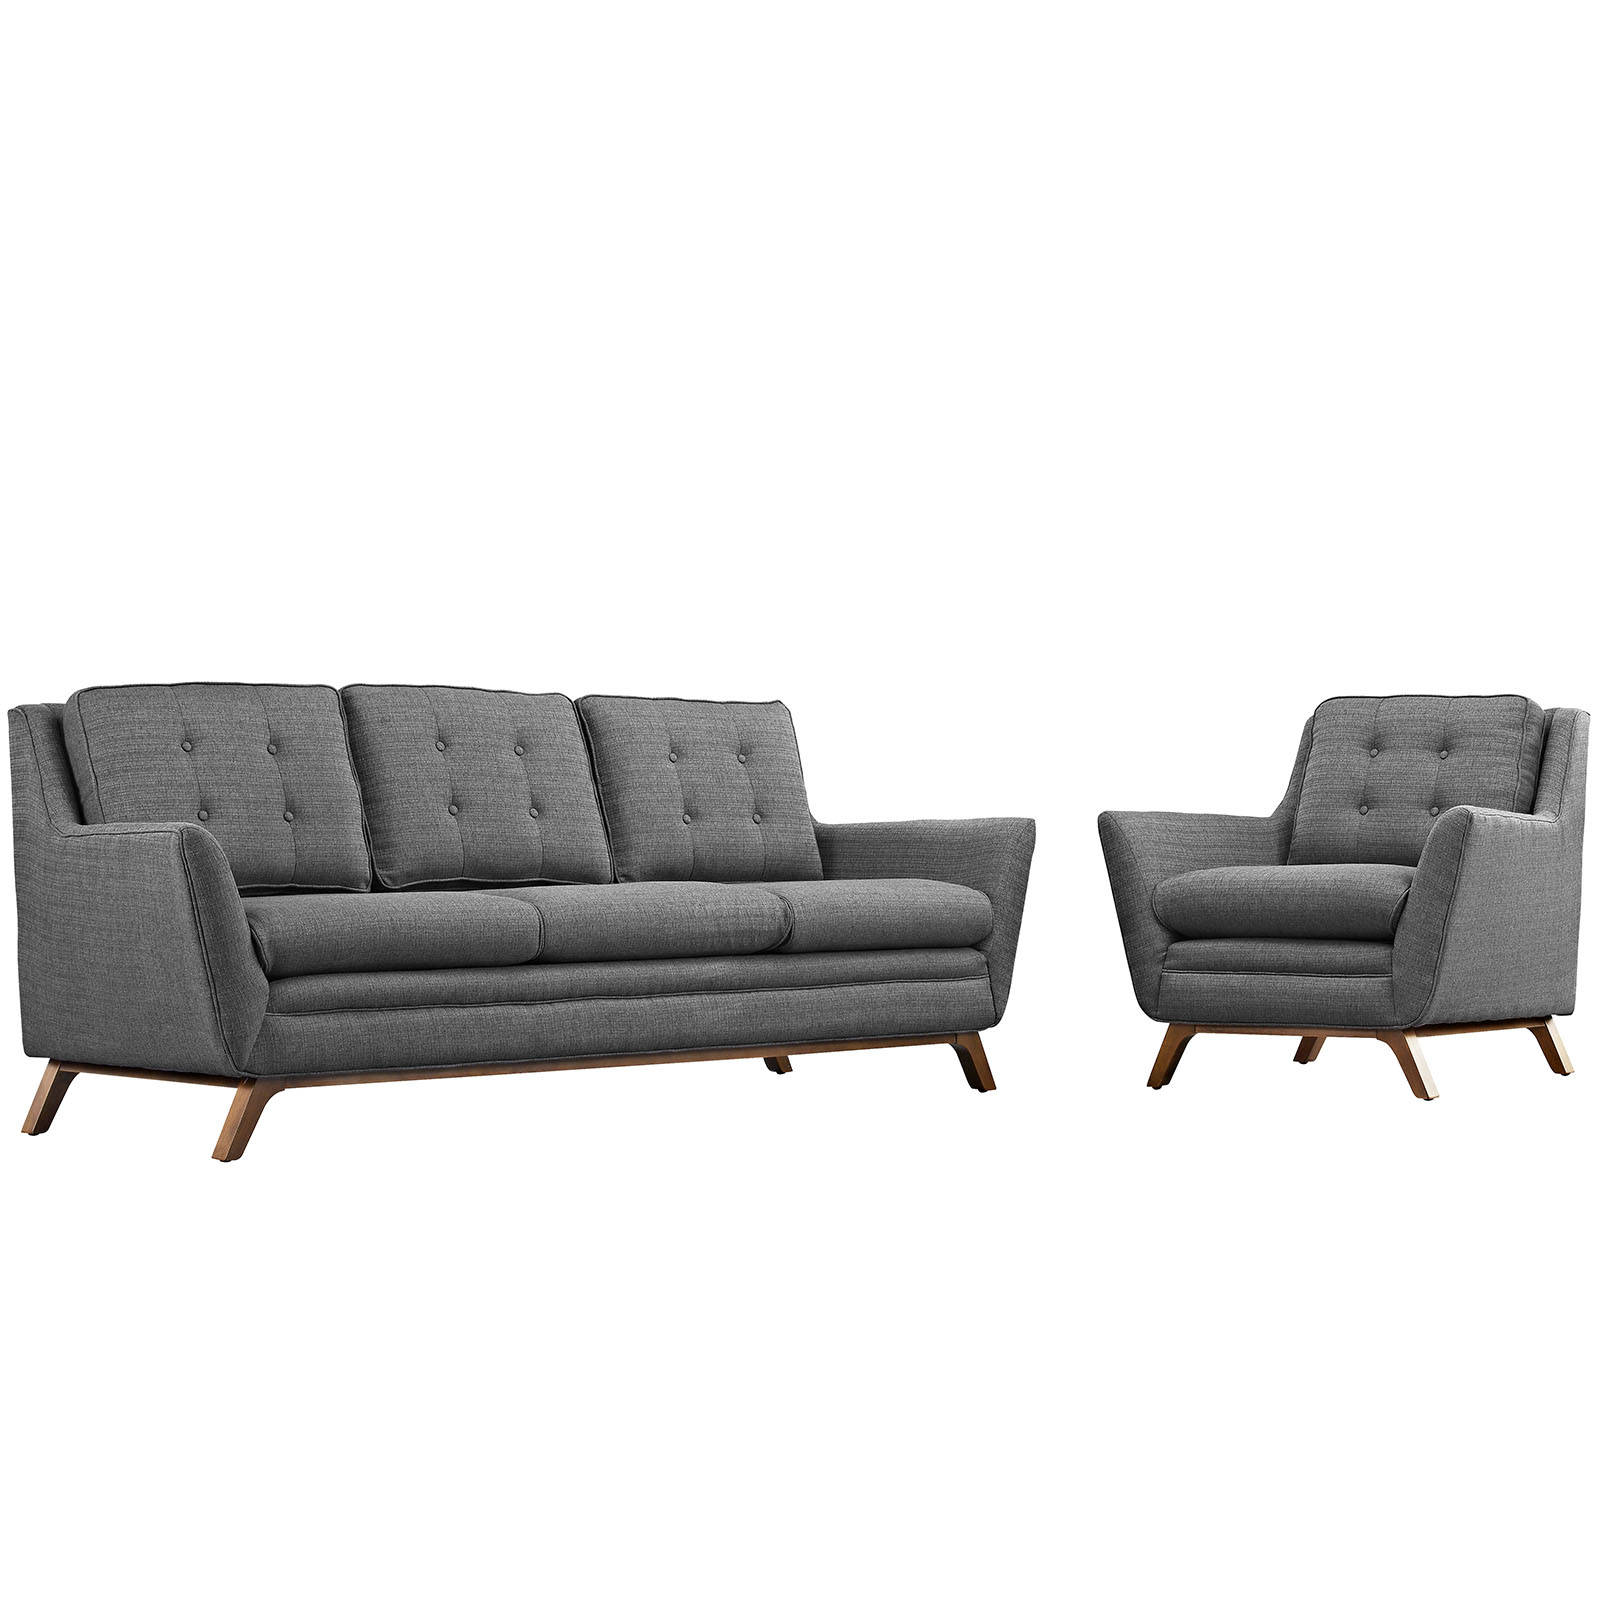 Modway Furniture Beguile Gray 2pc Living Room